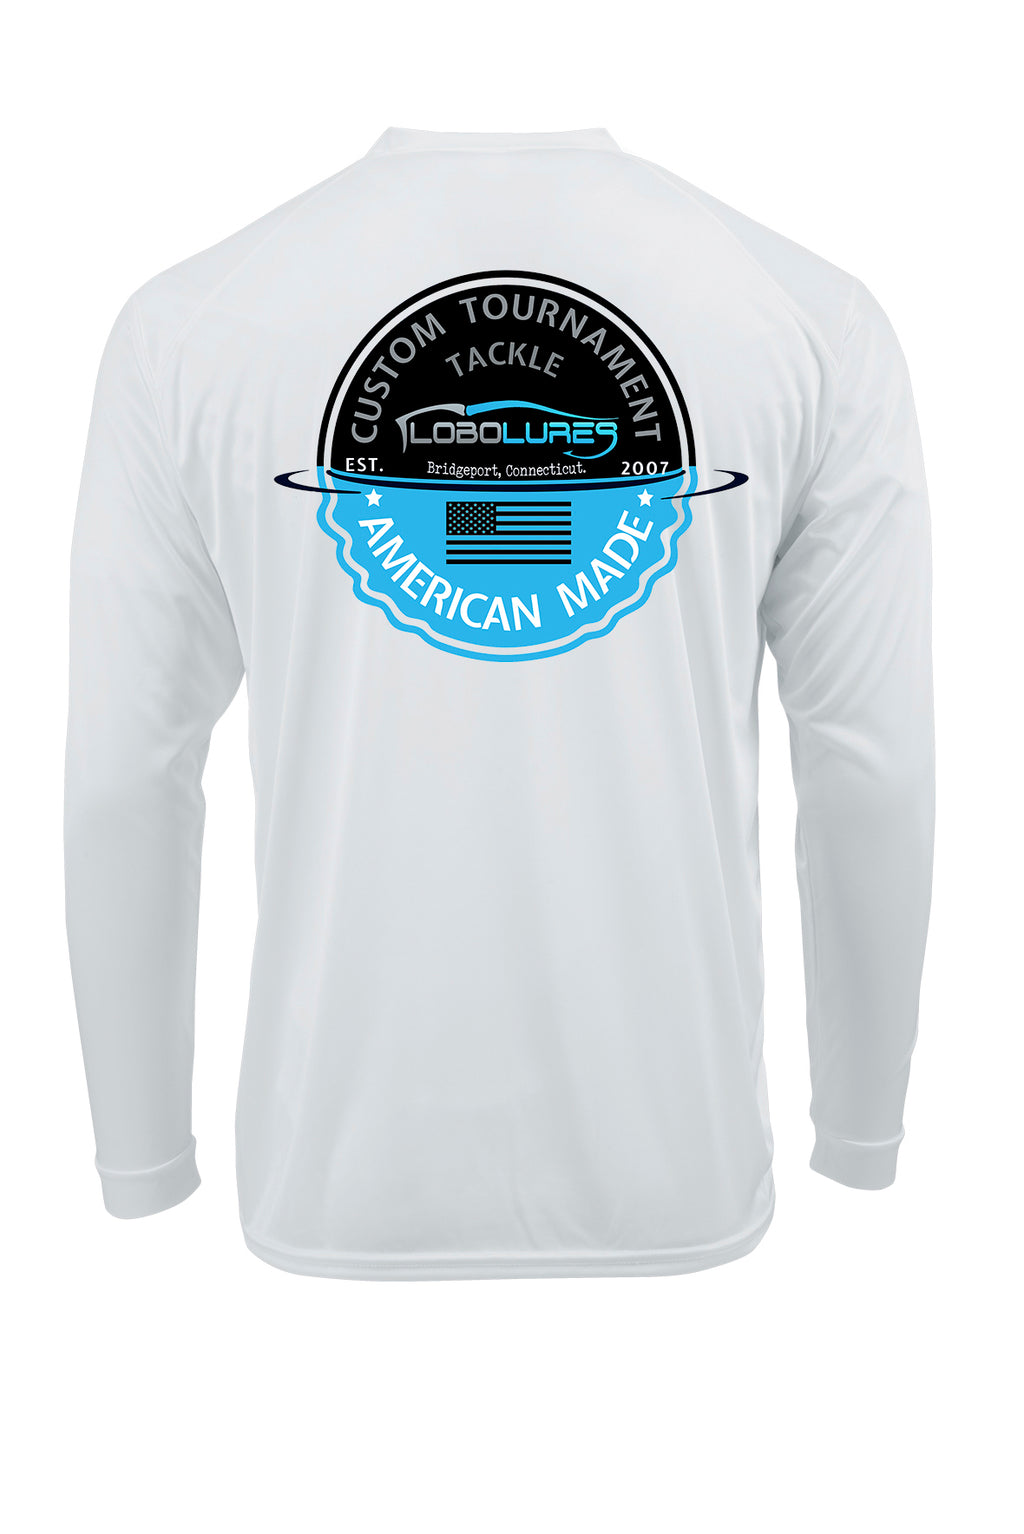 lobo-sportfishing - Lobo Lures Tournament Series Performance UPF 50+ T-shirt - LOBO PERFORMANCE GEAR -